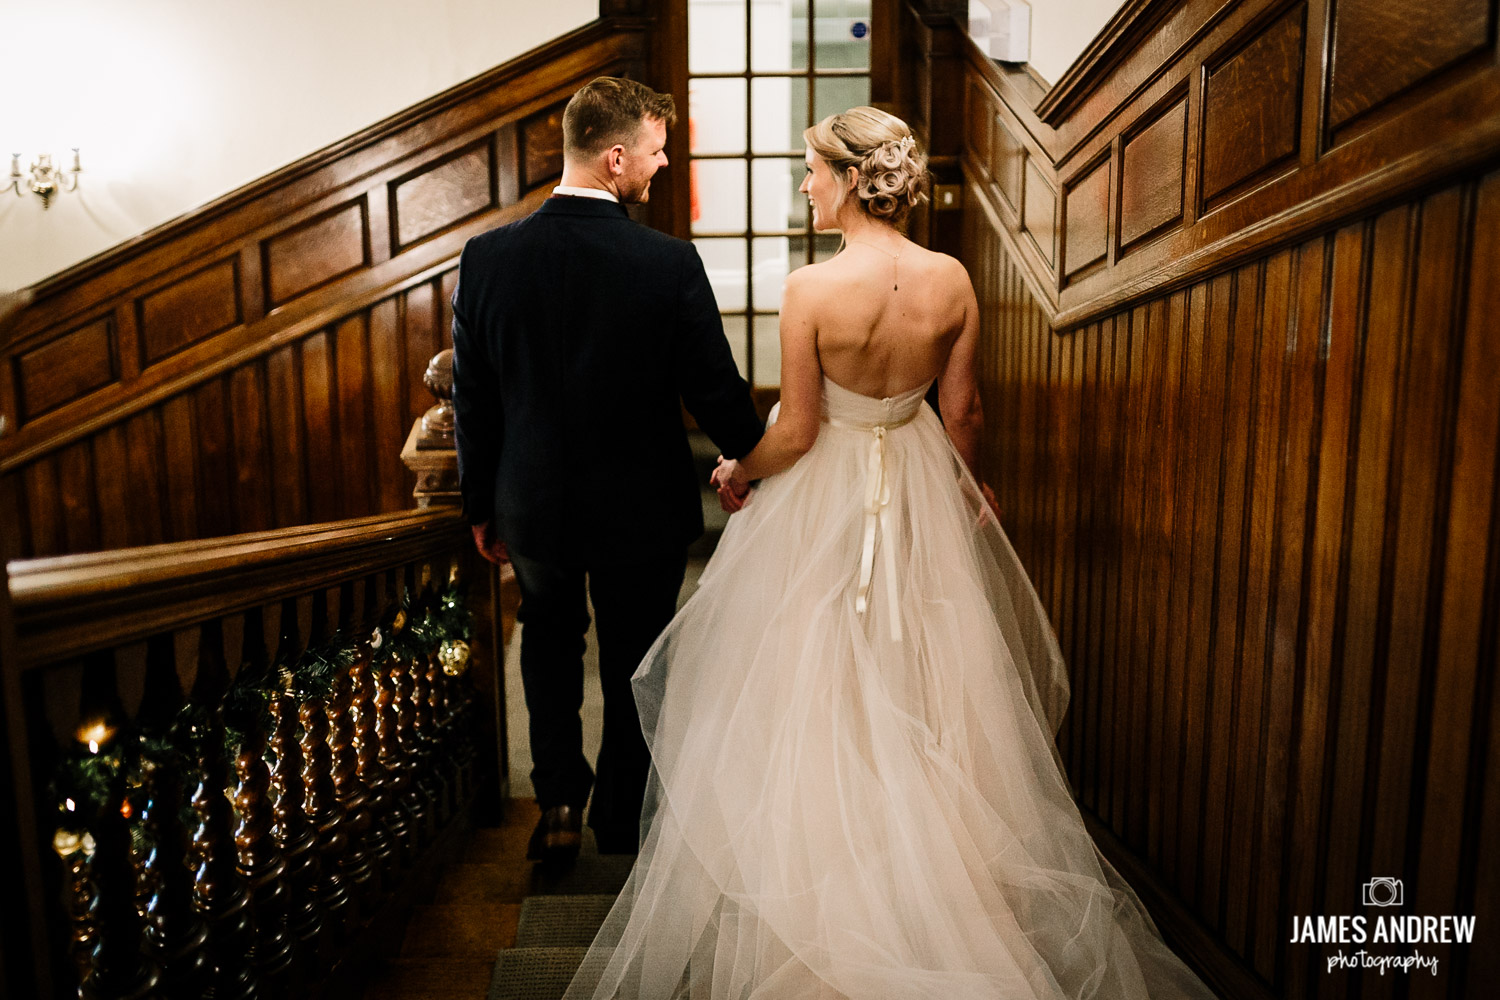 Bride and groom walk down stairs